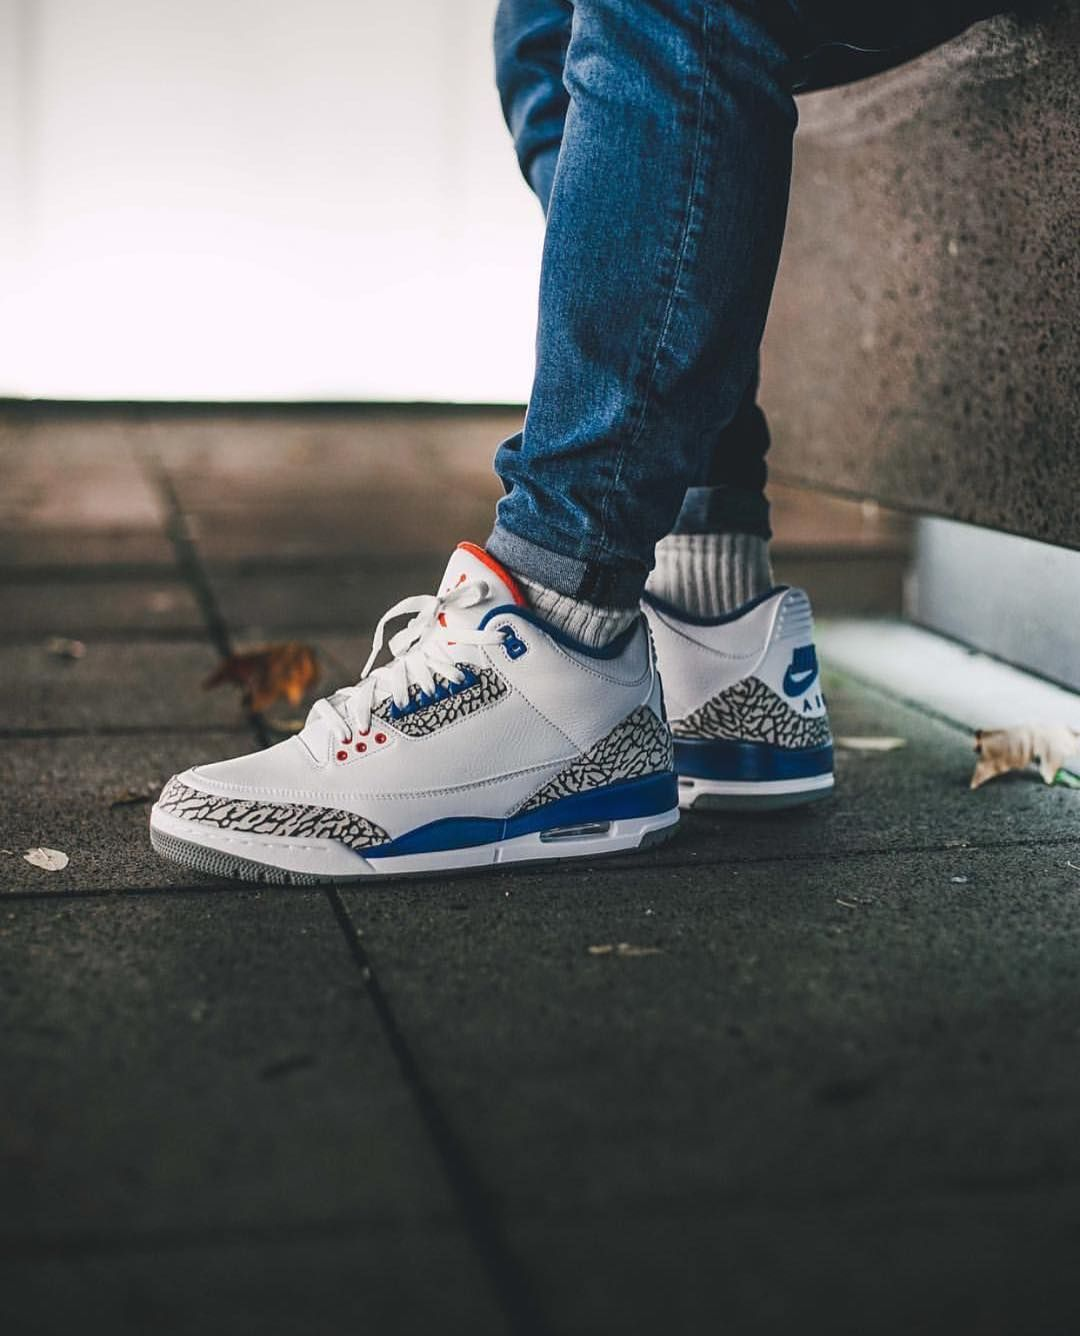 super popular 4382f 9bf6b Air Jordan 3 Retro OG  True Blue  (via Kicks-daily.com)